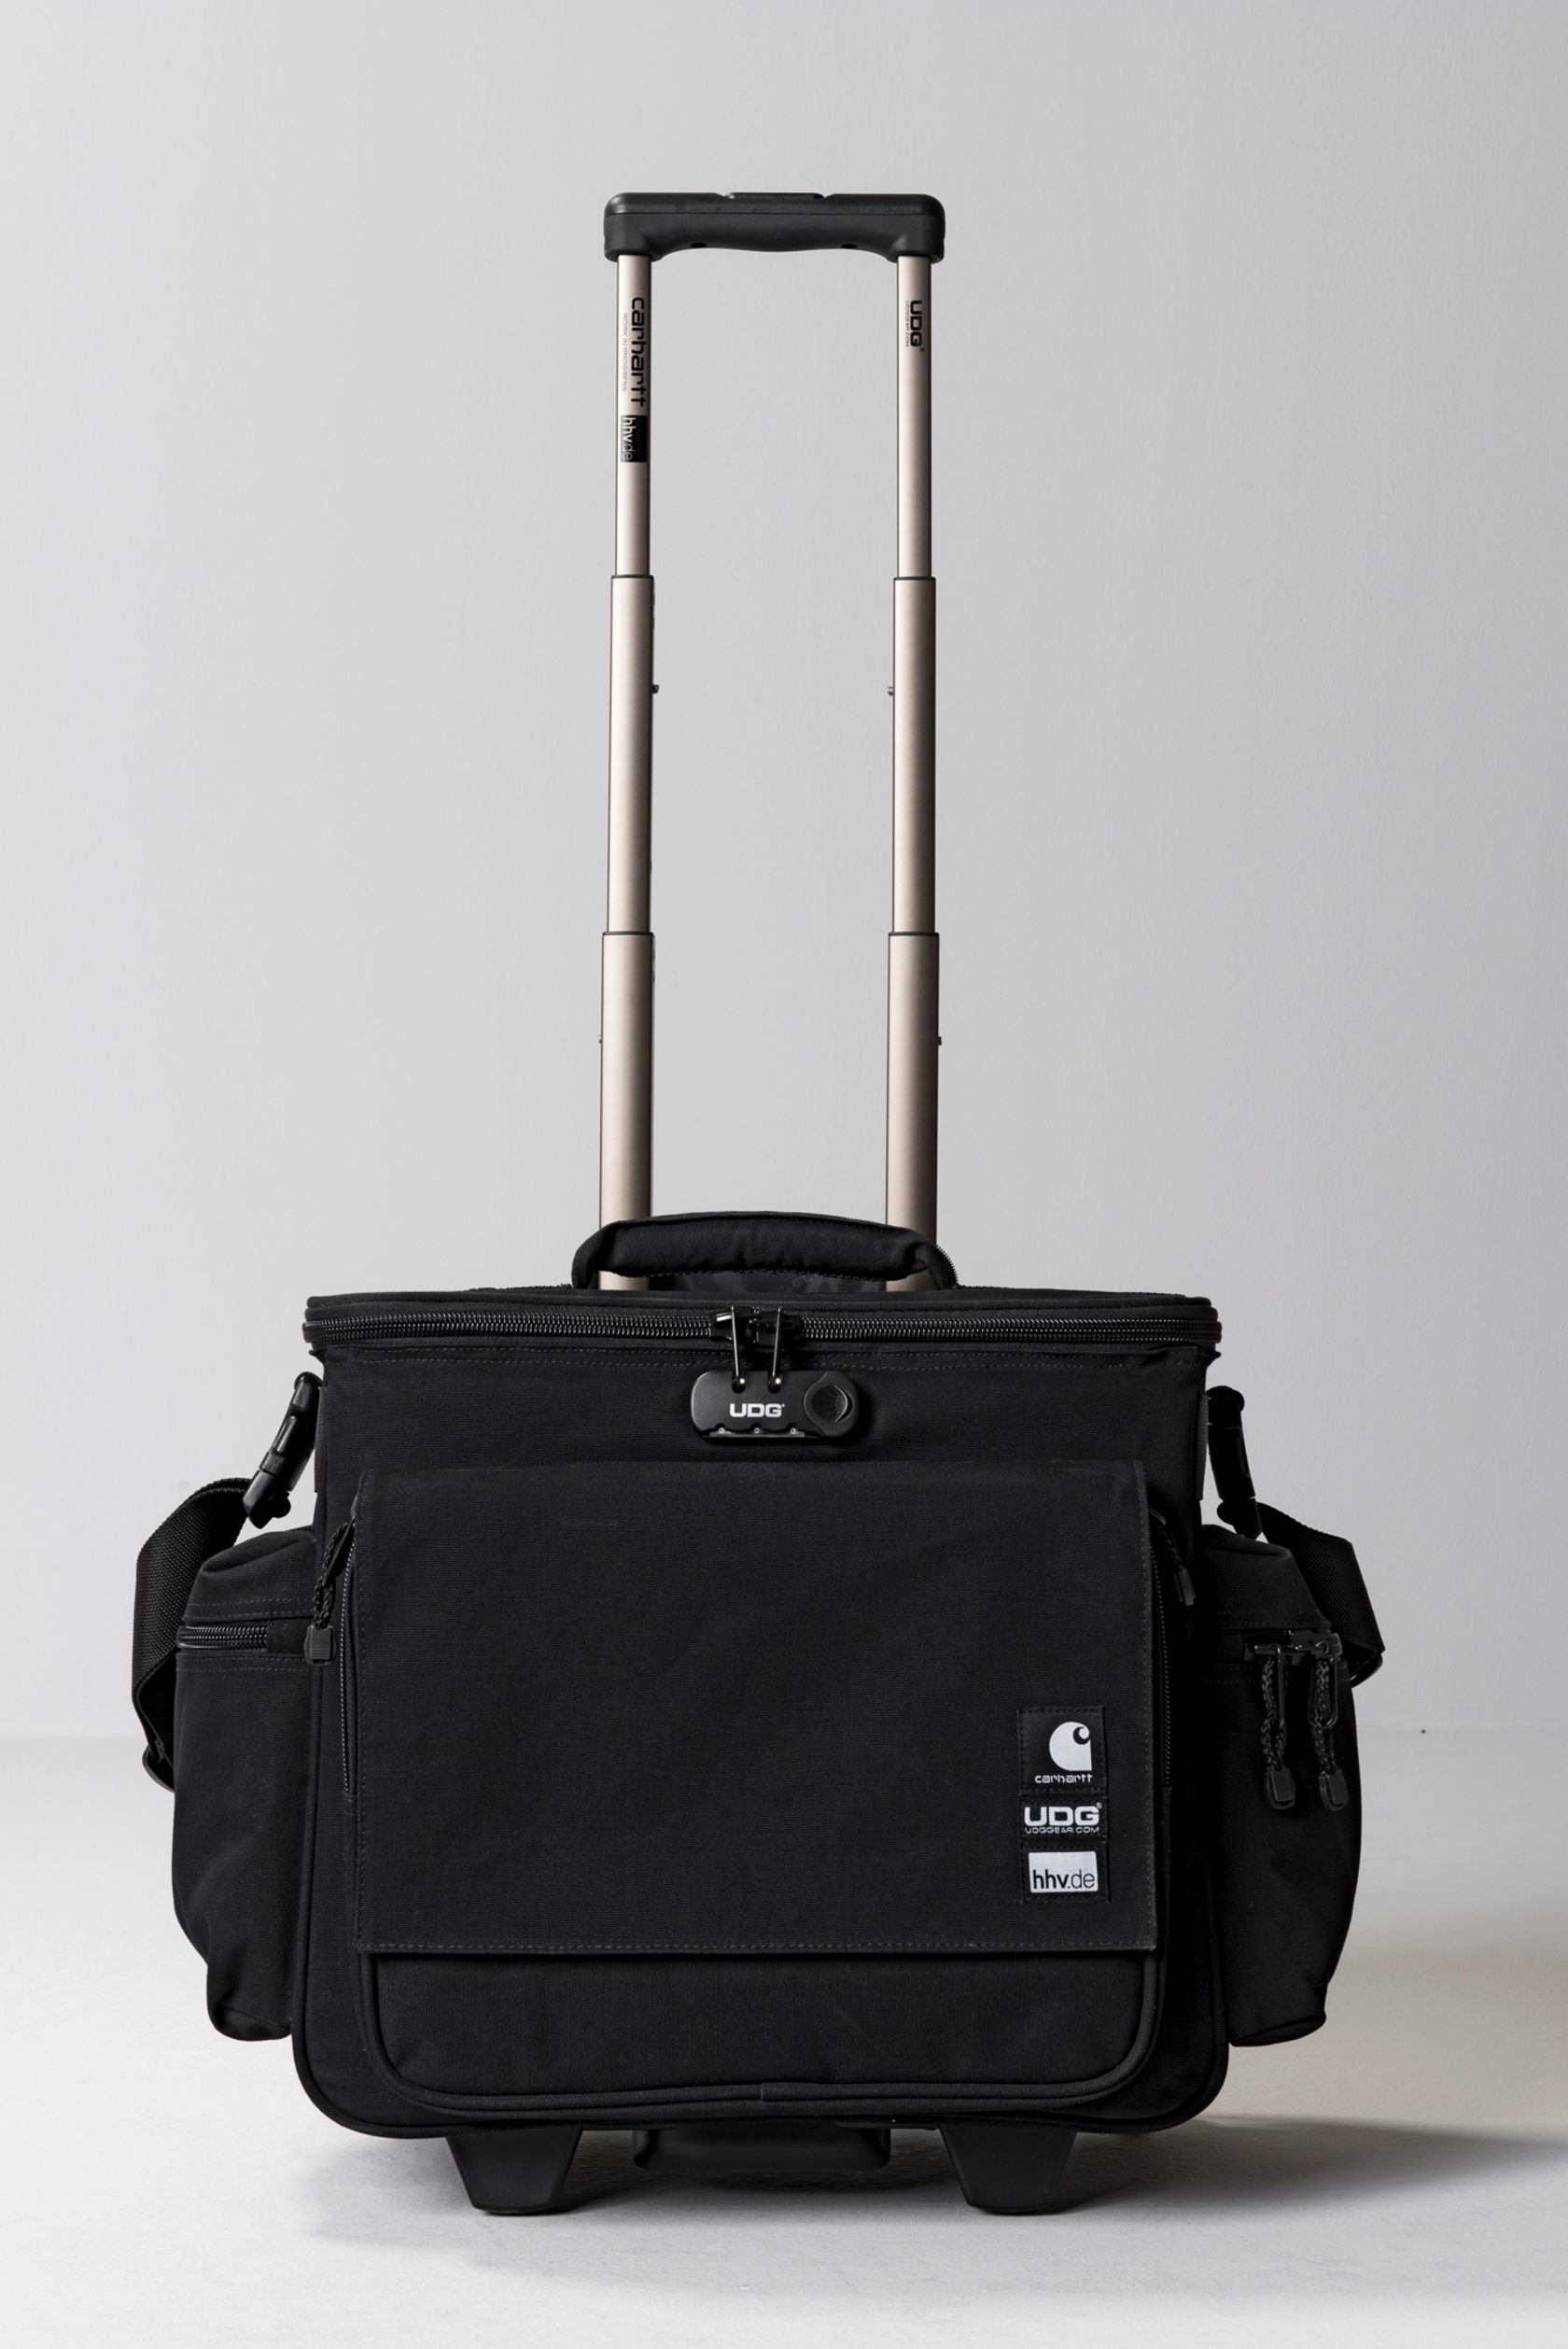 a0f4b0308f7 Carhartt WIP Carhartt WIP x HHV x UDG Sling Bag Trolley »For The Record« |  carhartt-wip.com